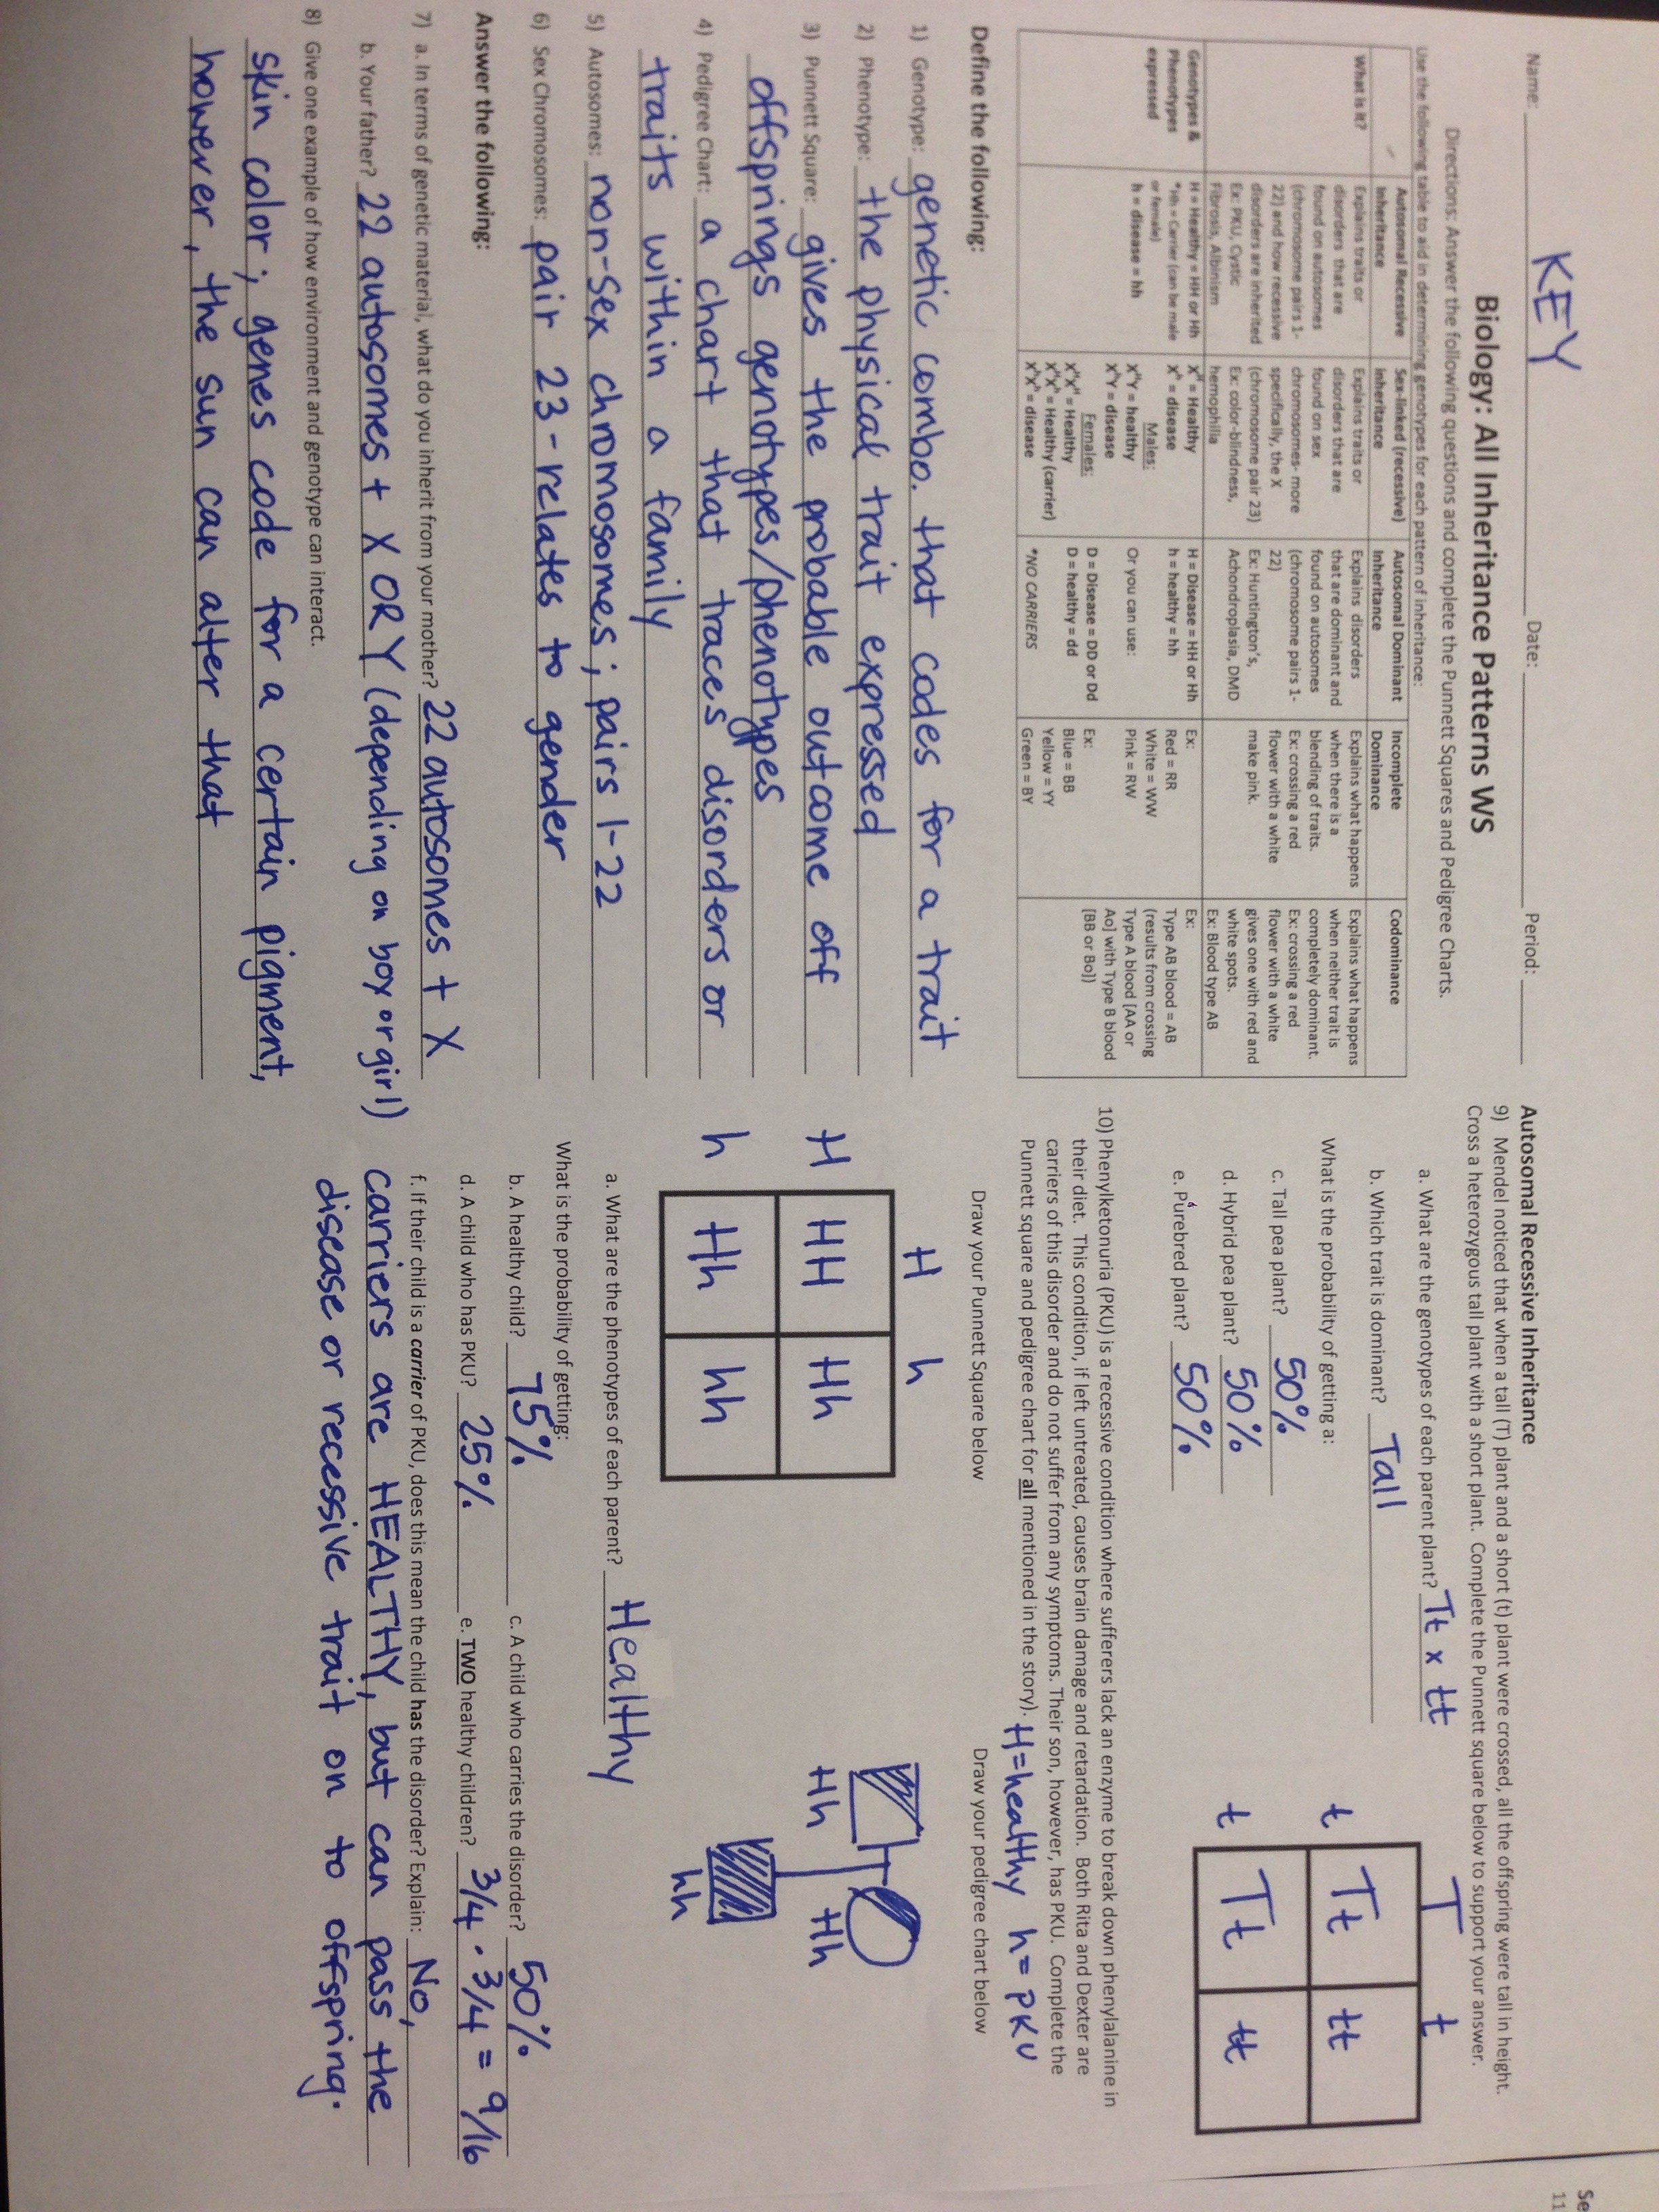 Pedigrees Worksheet Answers 9th Grade